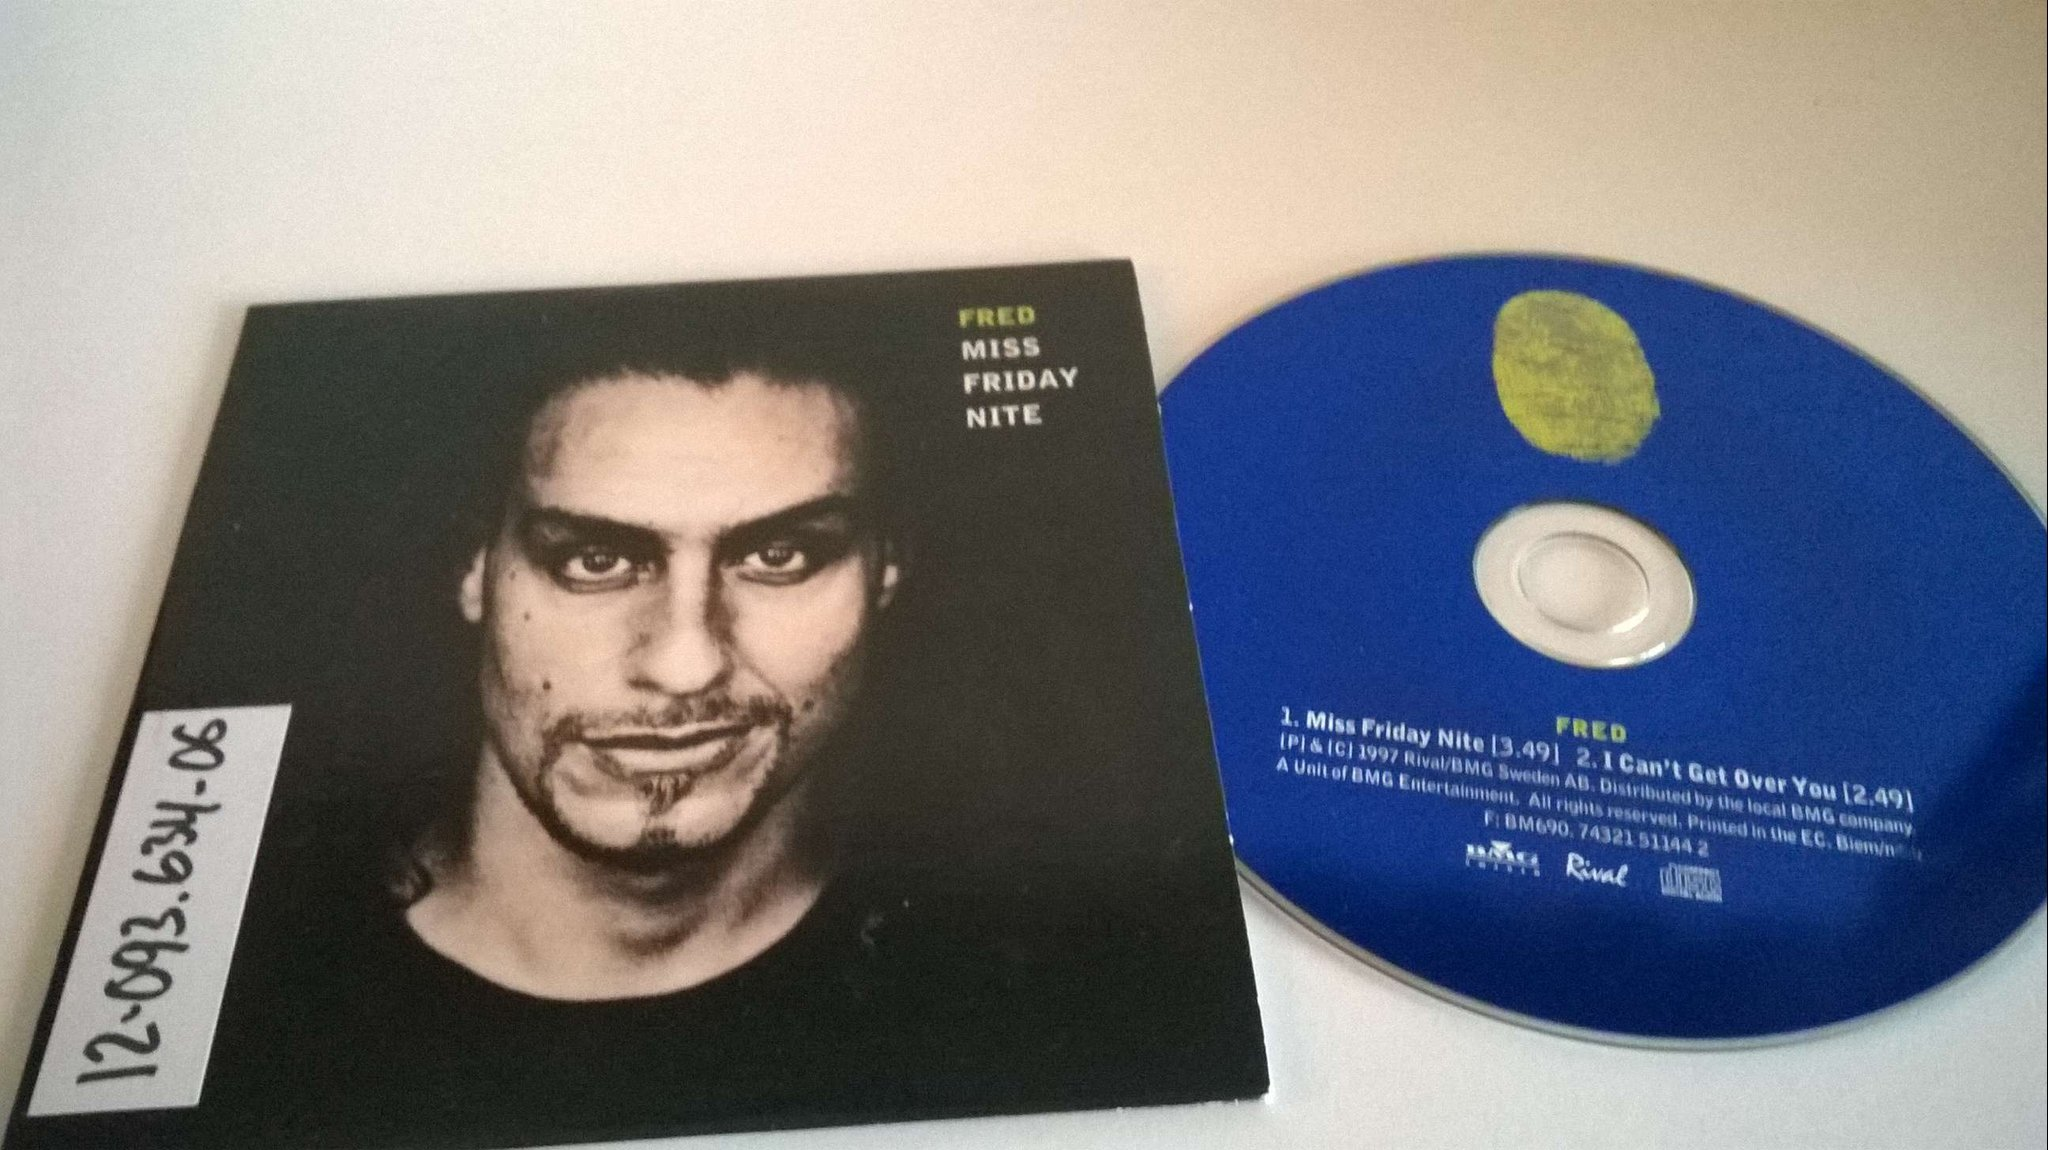 Fred - Miss Friday Nite, single CD